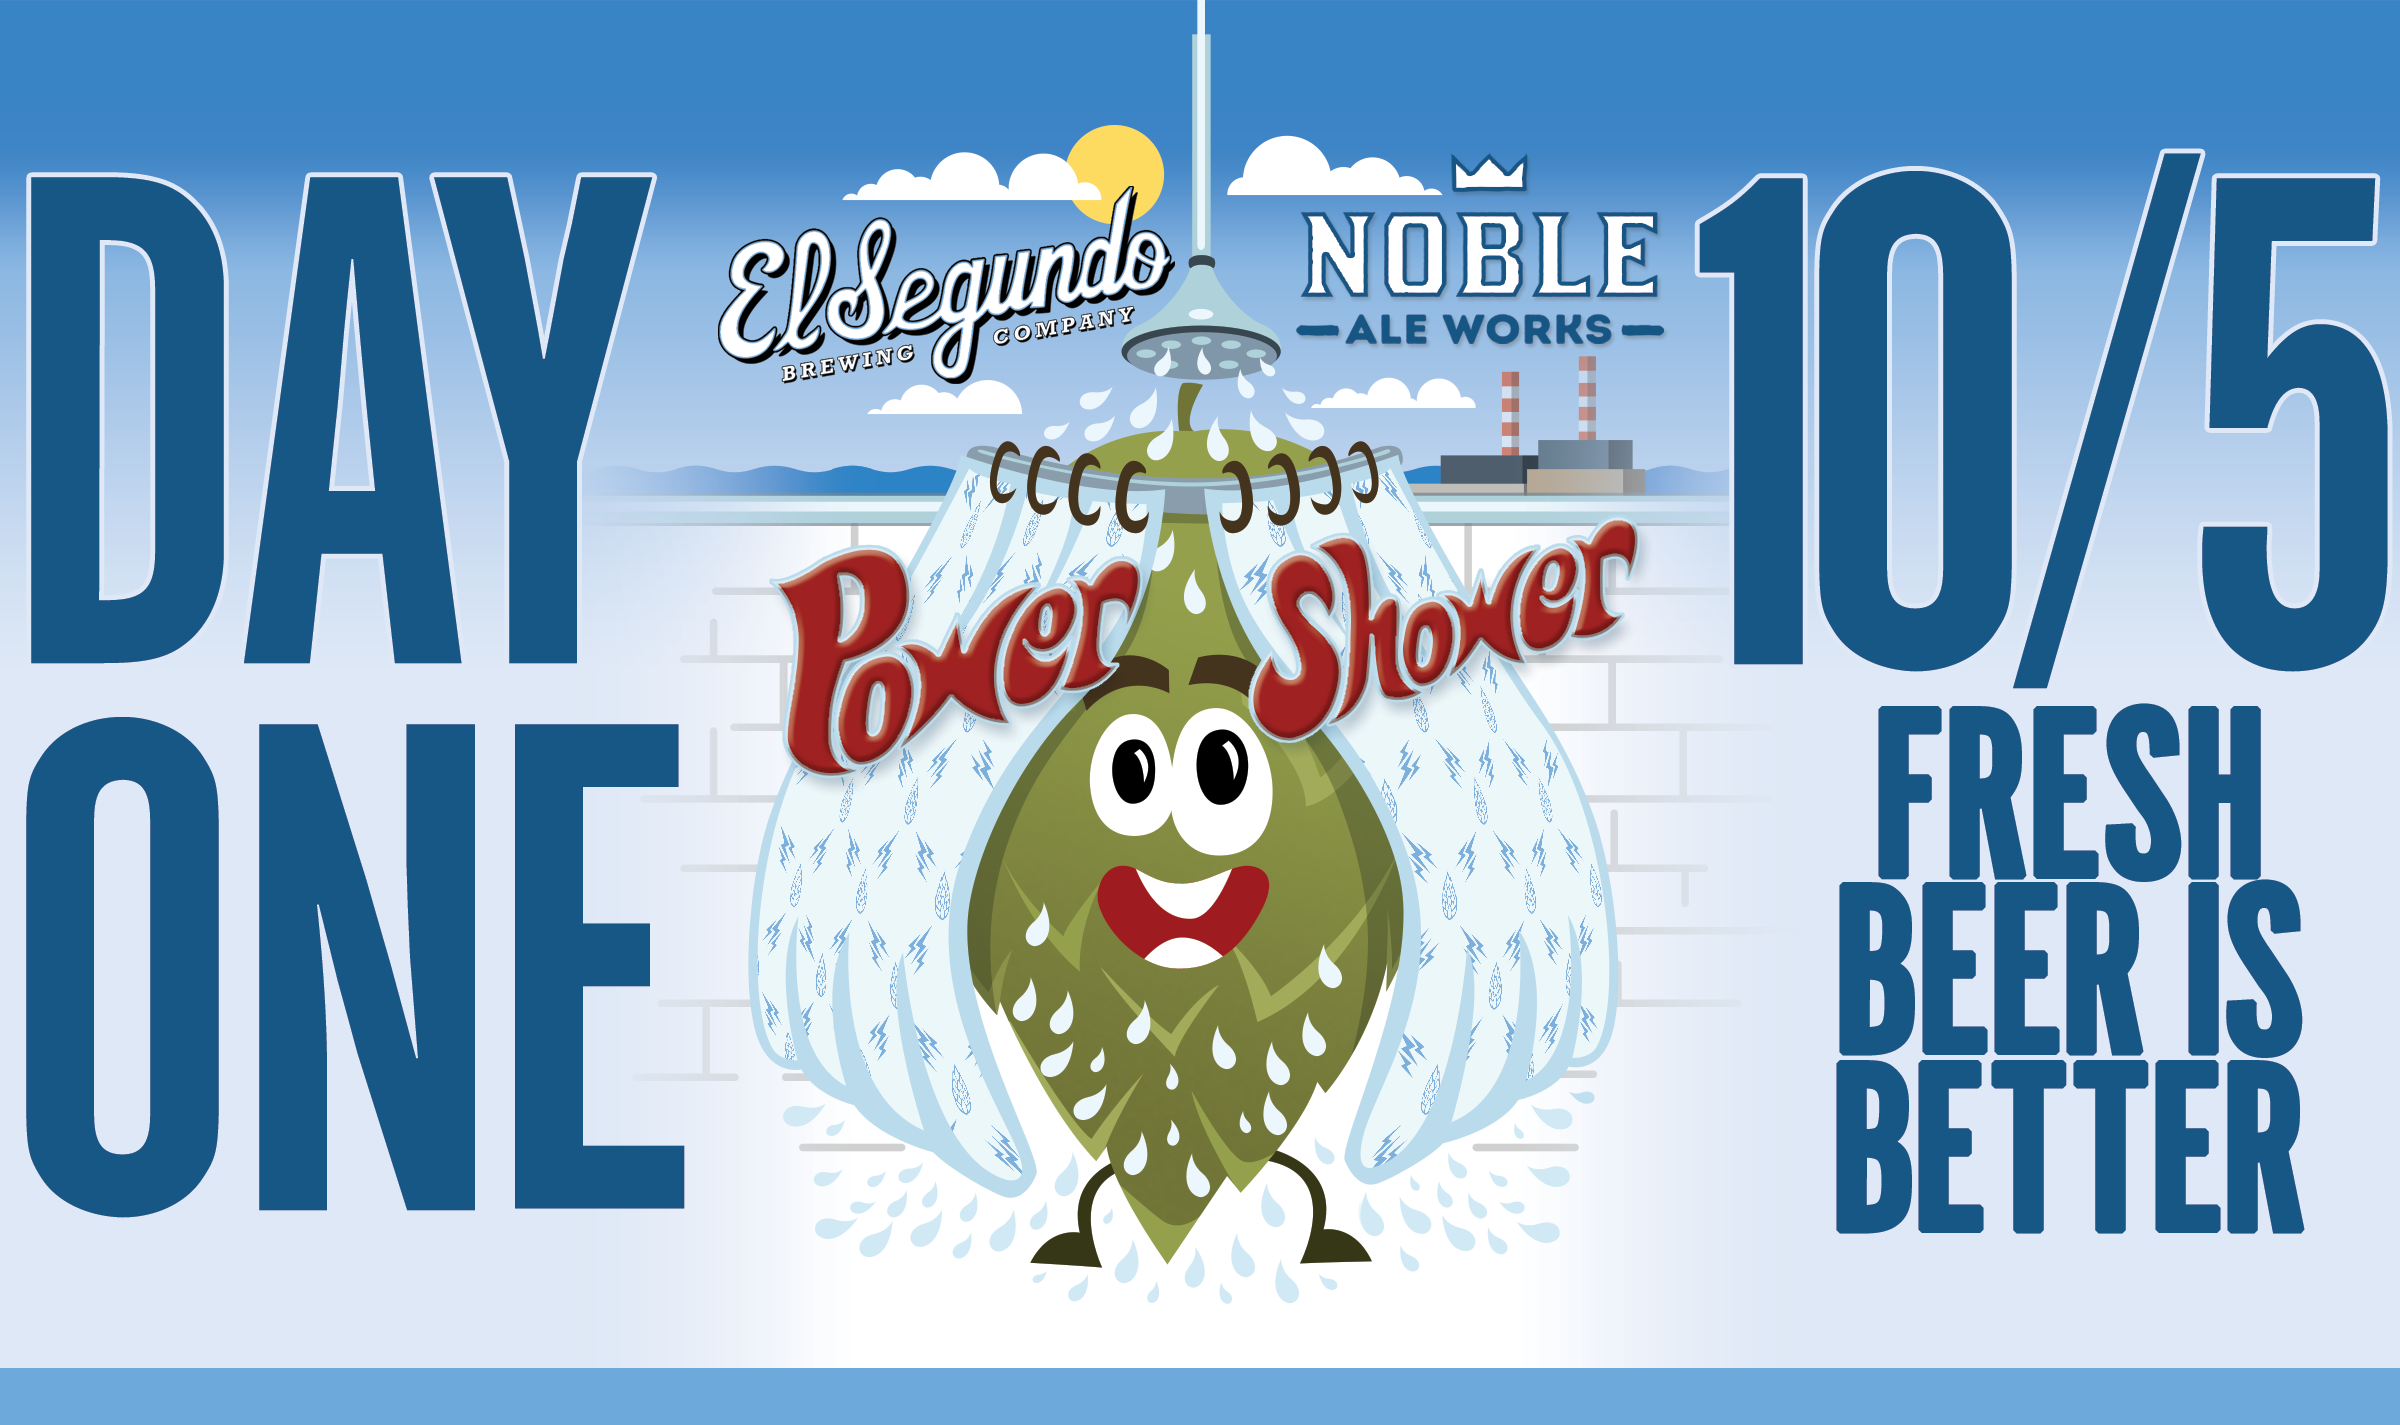 El Segundo Brewing - Noble Ale Works - Power Shower Day One